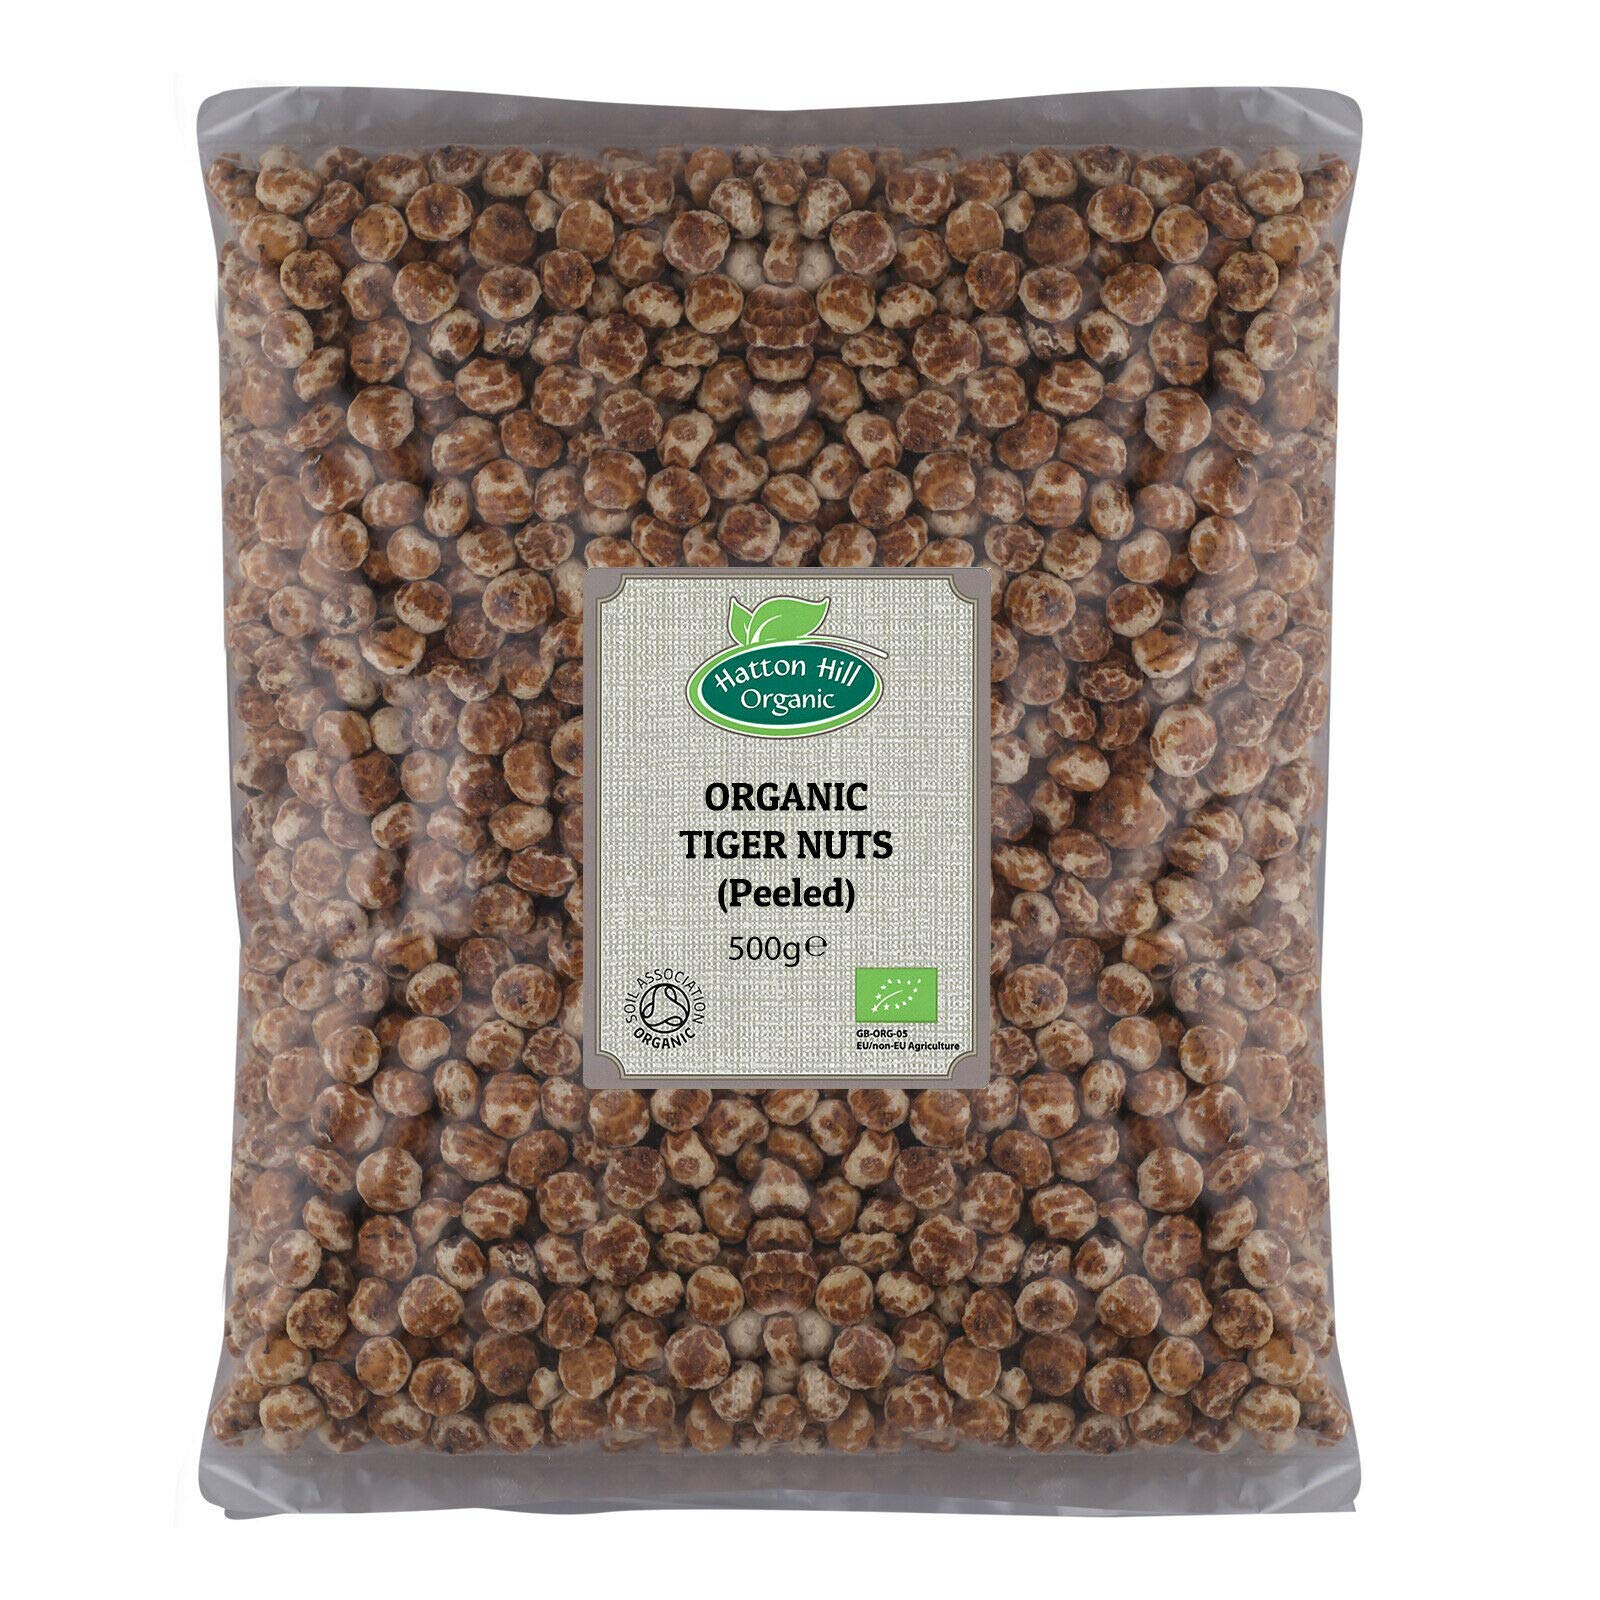 Organic Tiger Nuts (Peeled) 500g by Hatton Hill Organic - Free UK Delivery